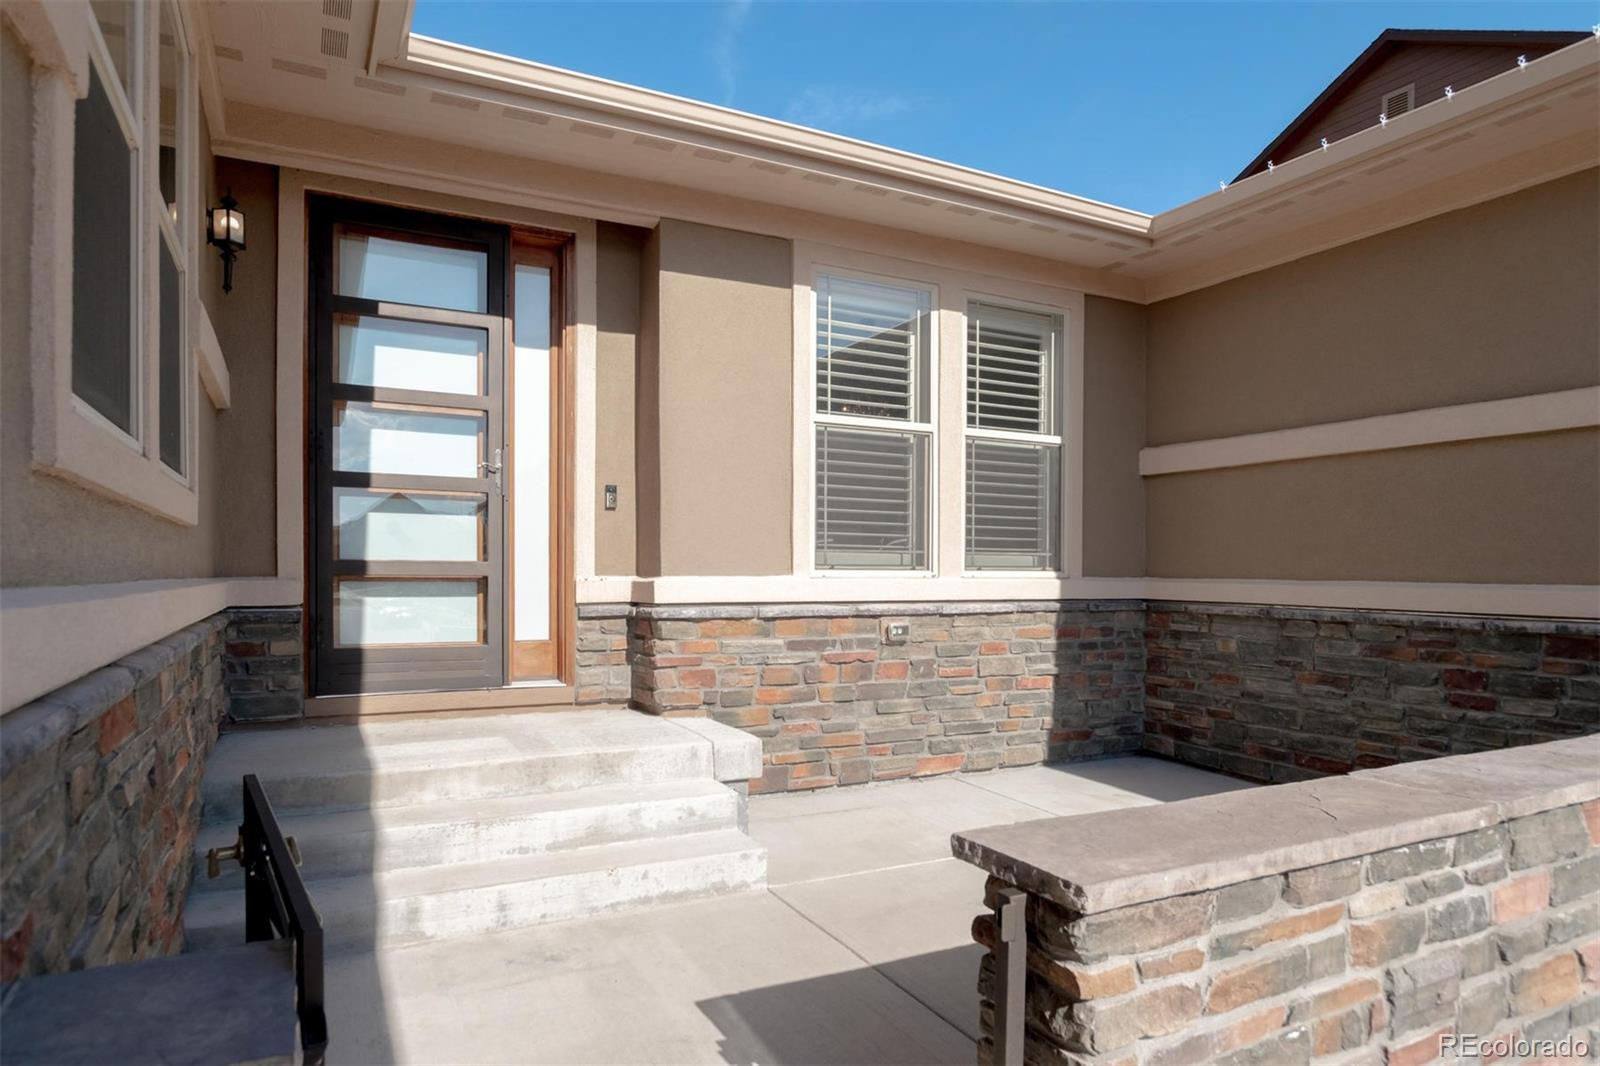 MLS# 5498200 - 3 - 11692 Spotted Street, Parker, CO 80134